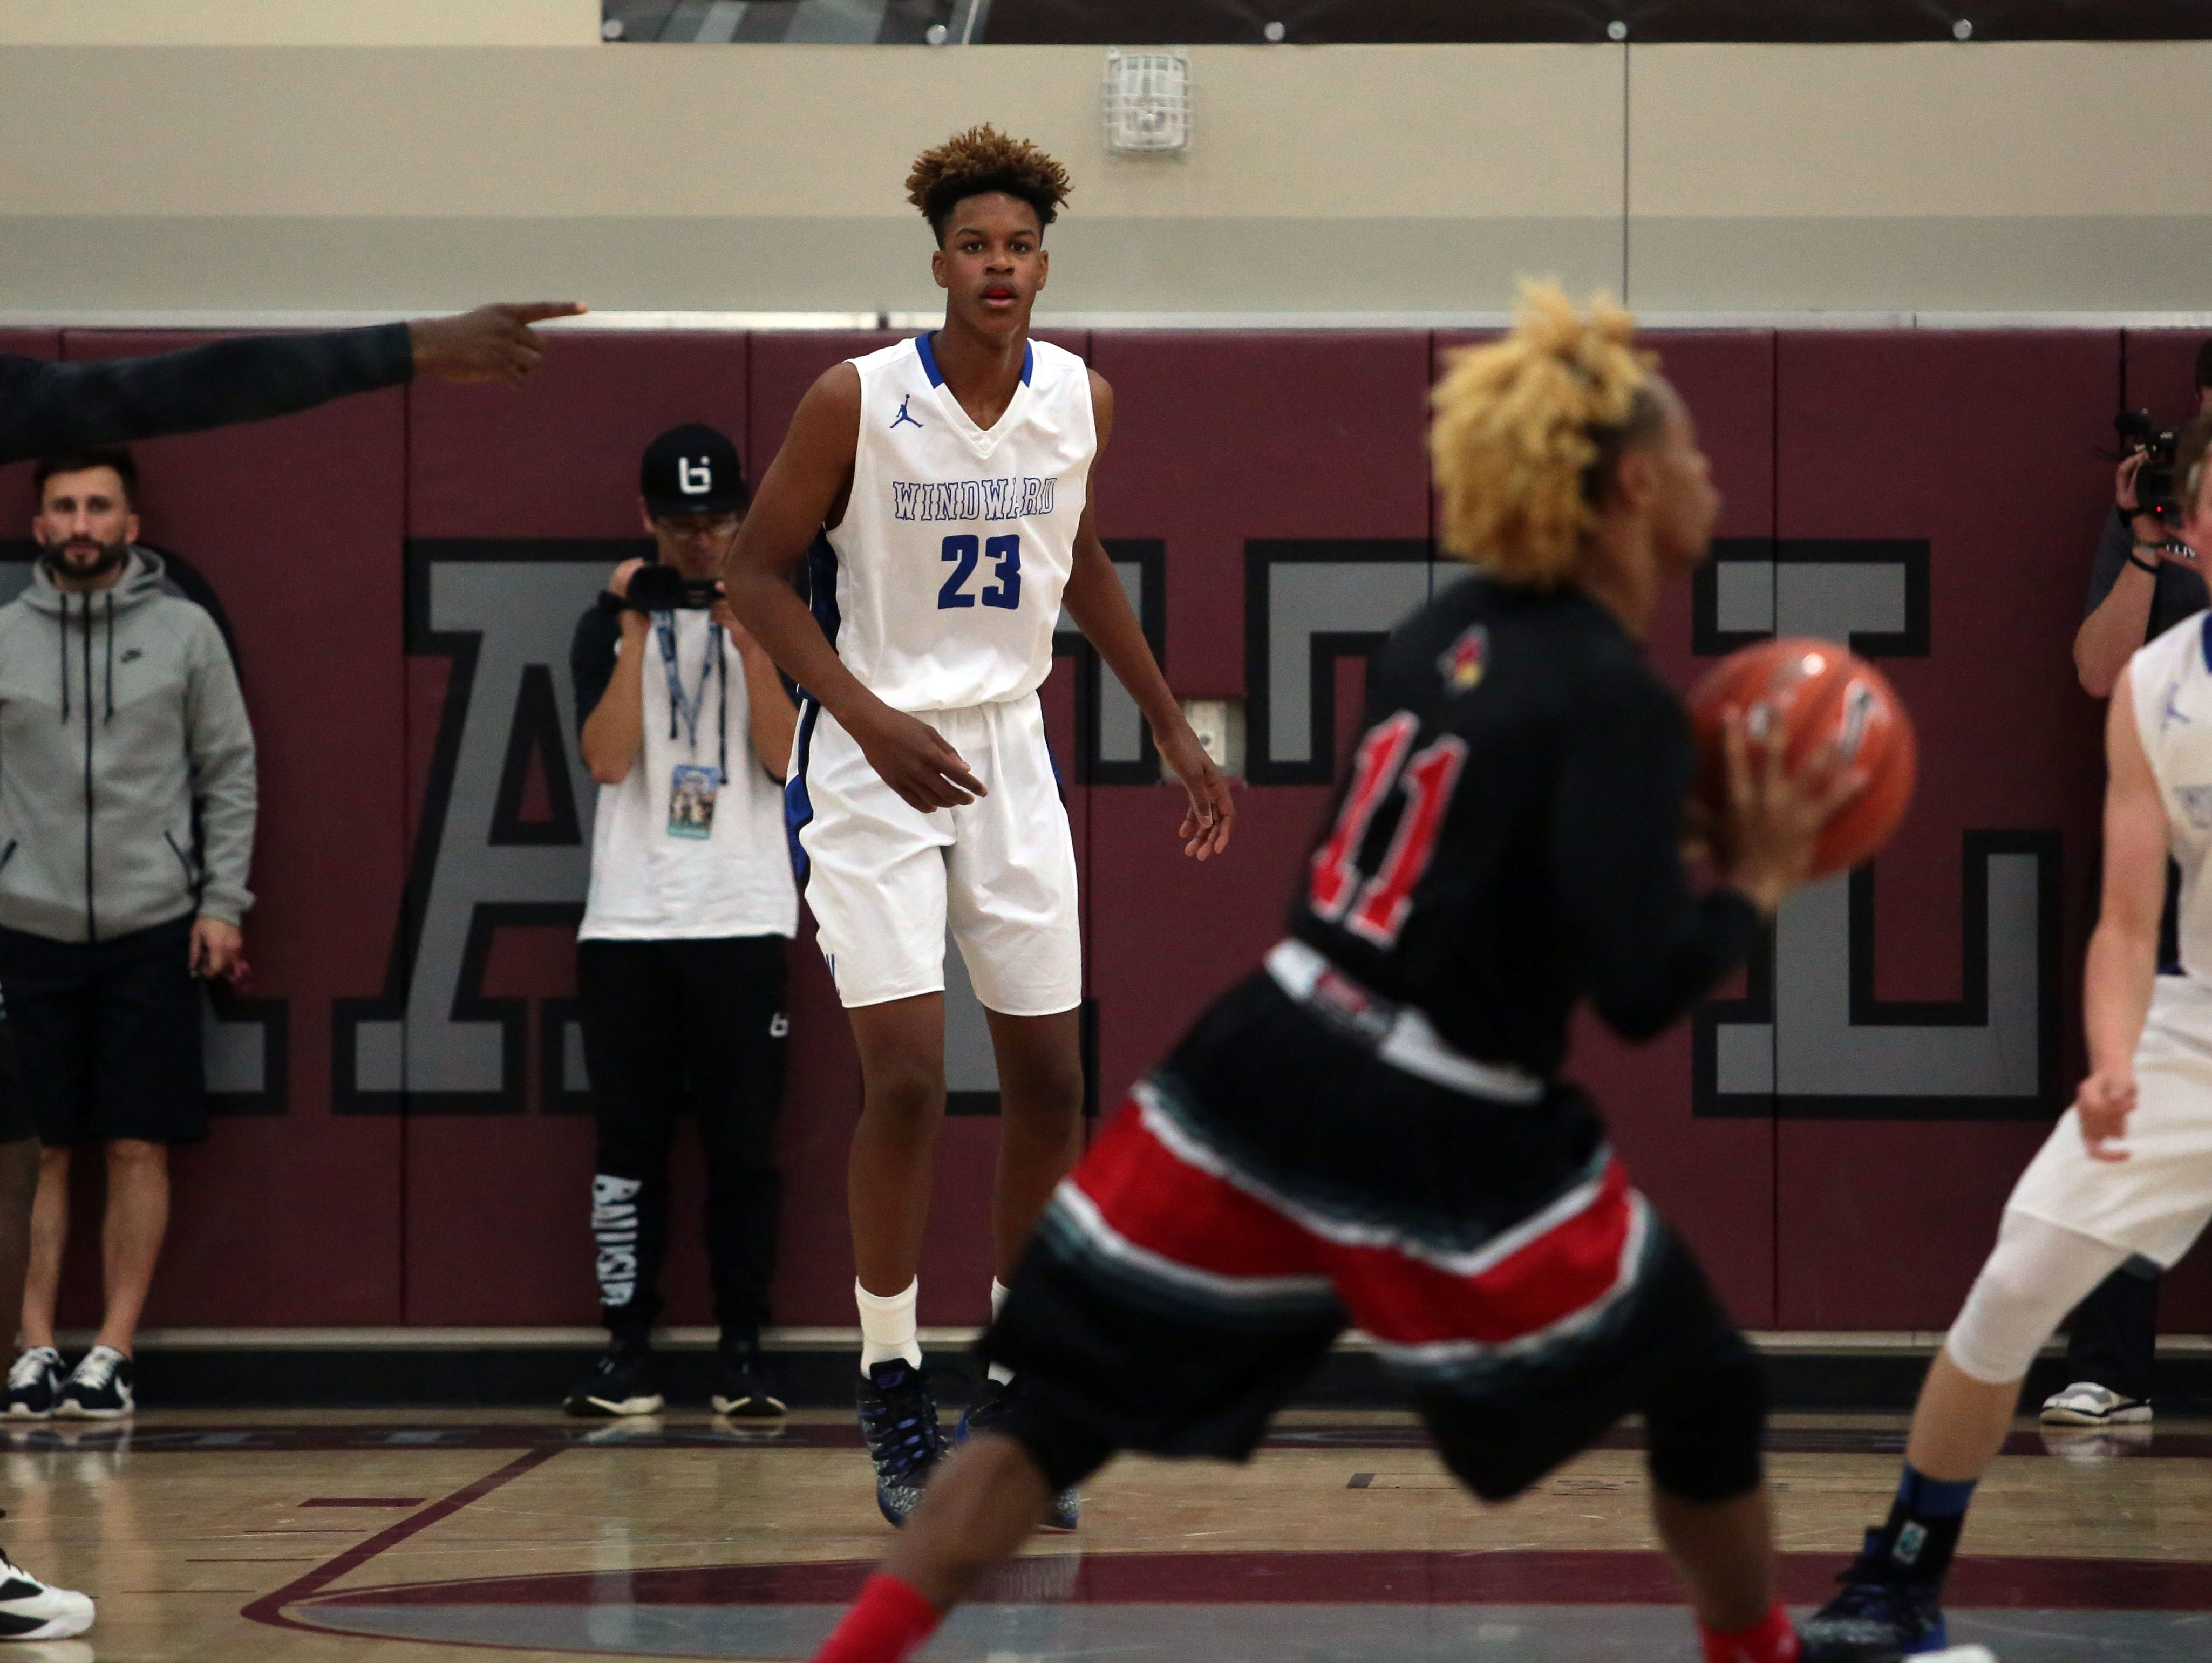 Windward High School forward Shareef O'Neal in action against Jonesboro on Saturday at Rancho Mirage High School during the MaxPreps Holiday Classic.